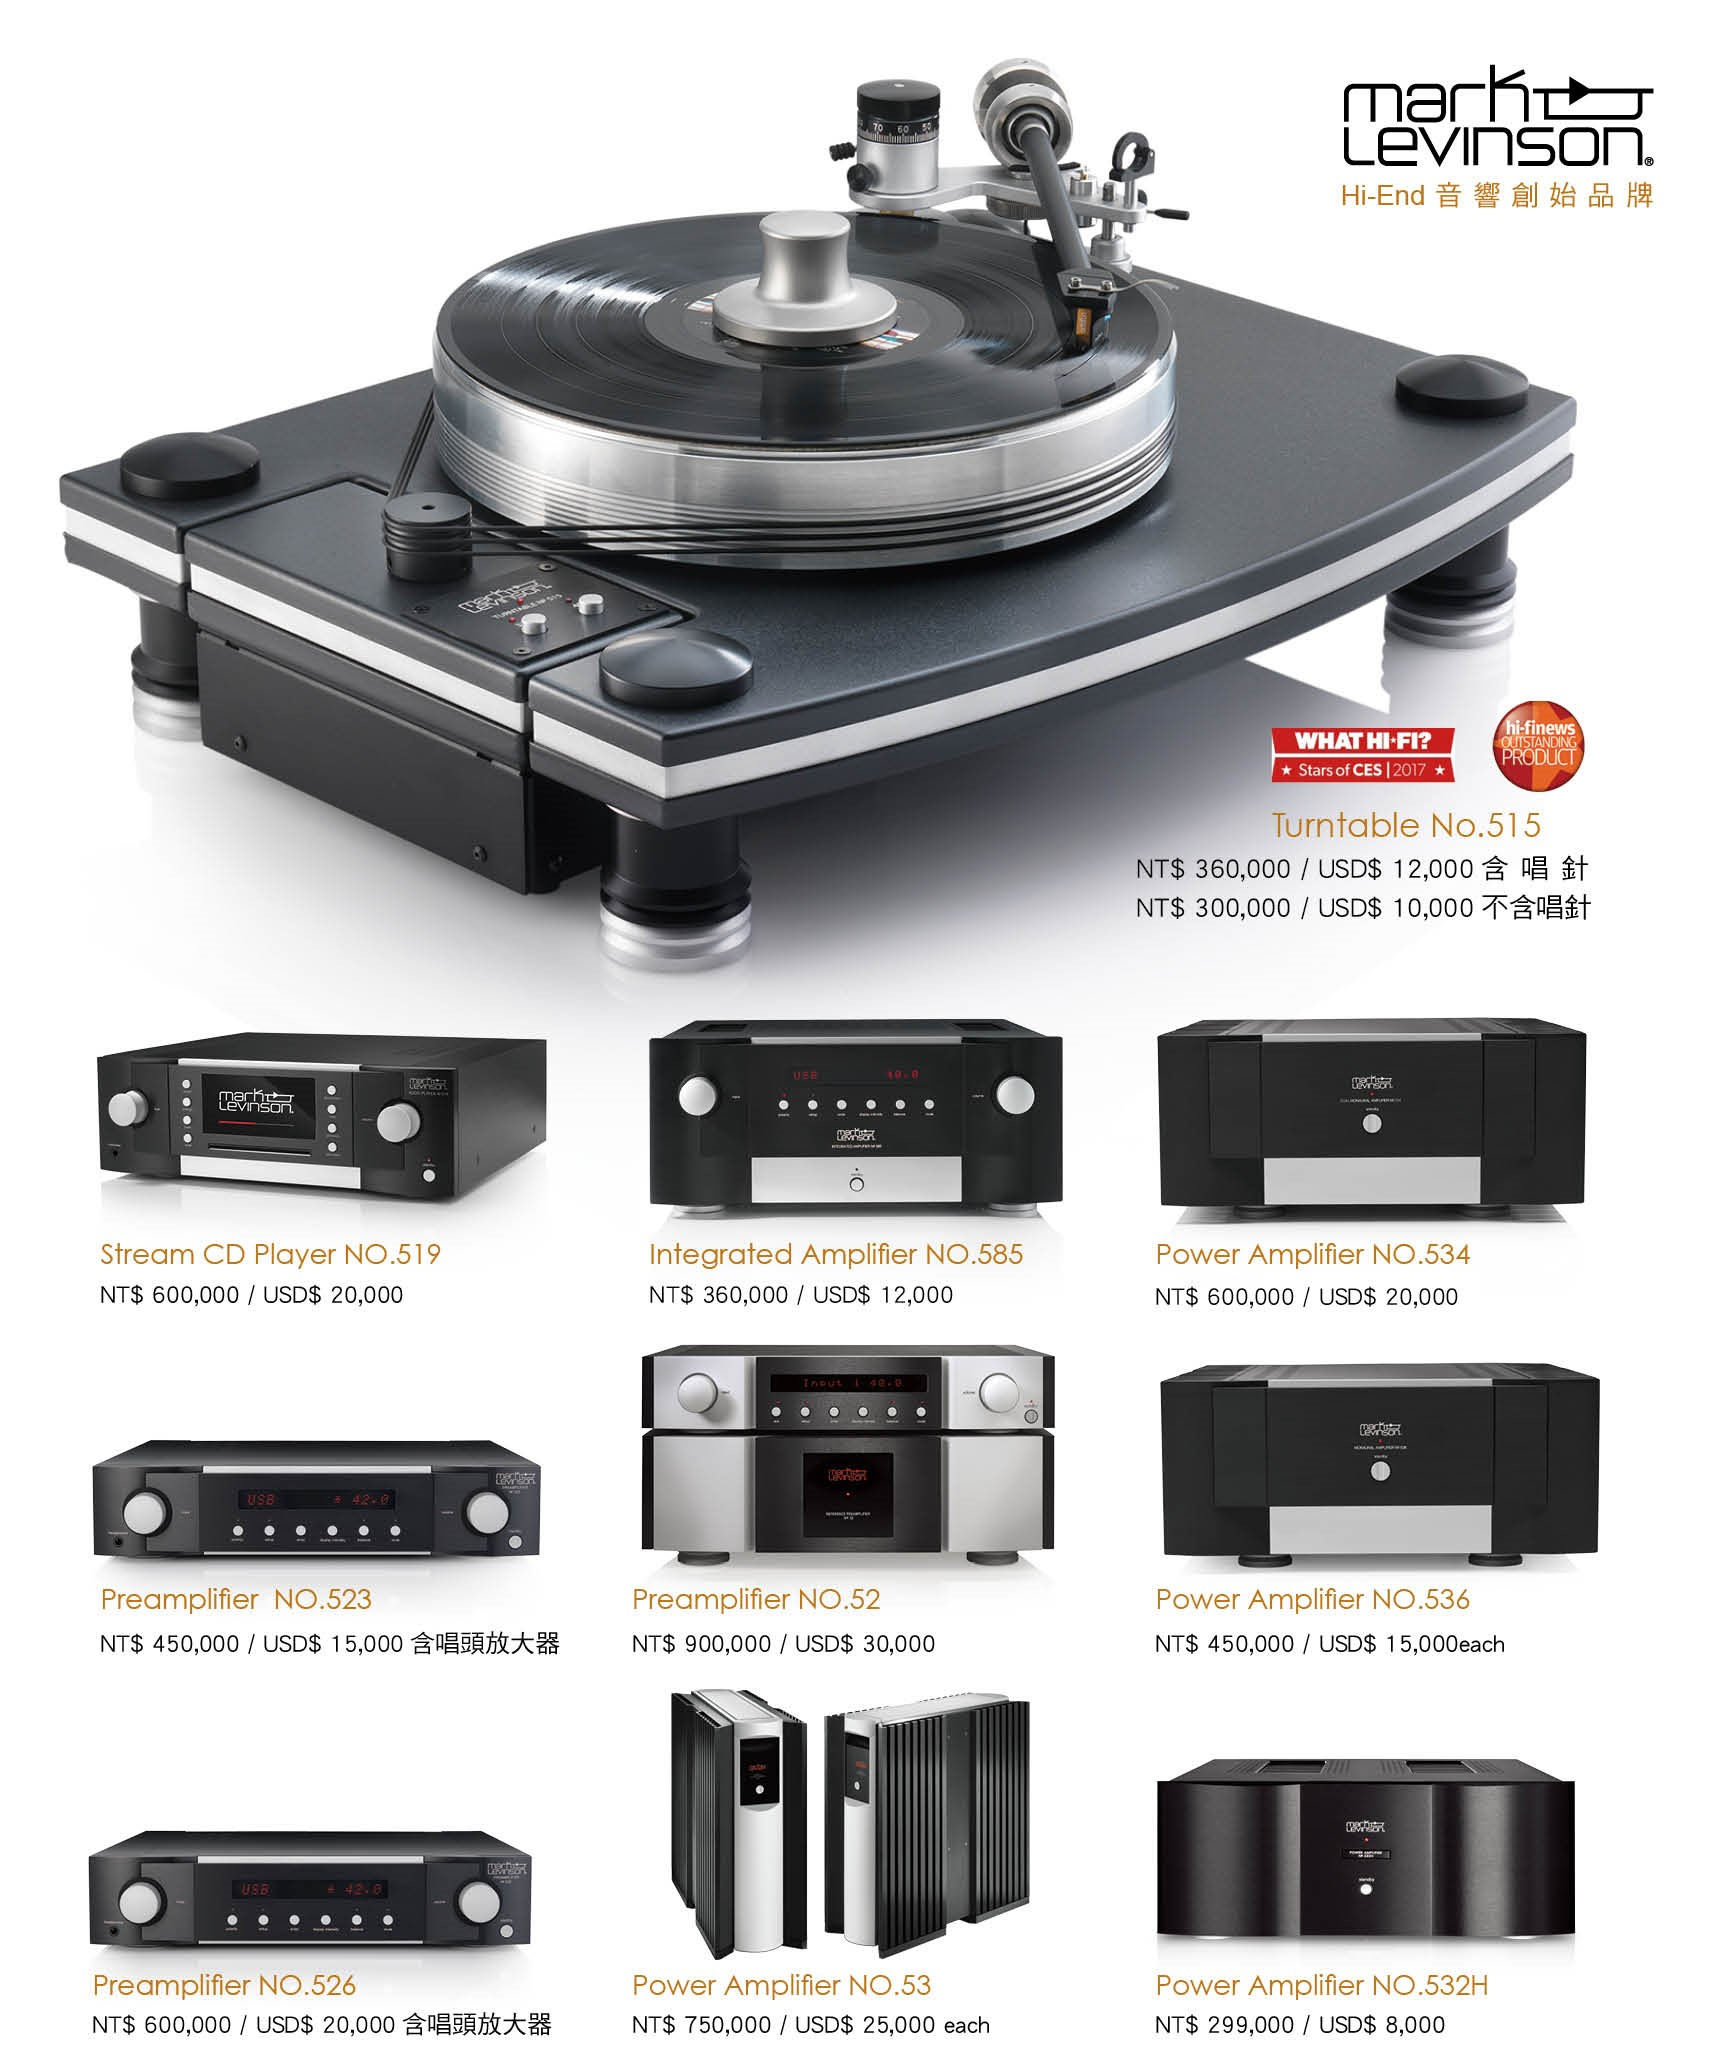 Mark Levinson New Price Catalog